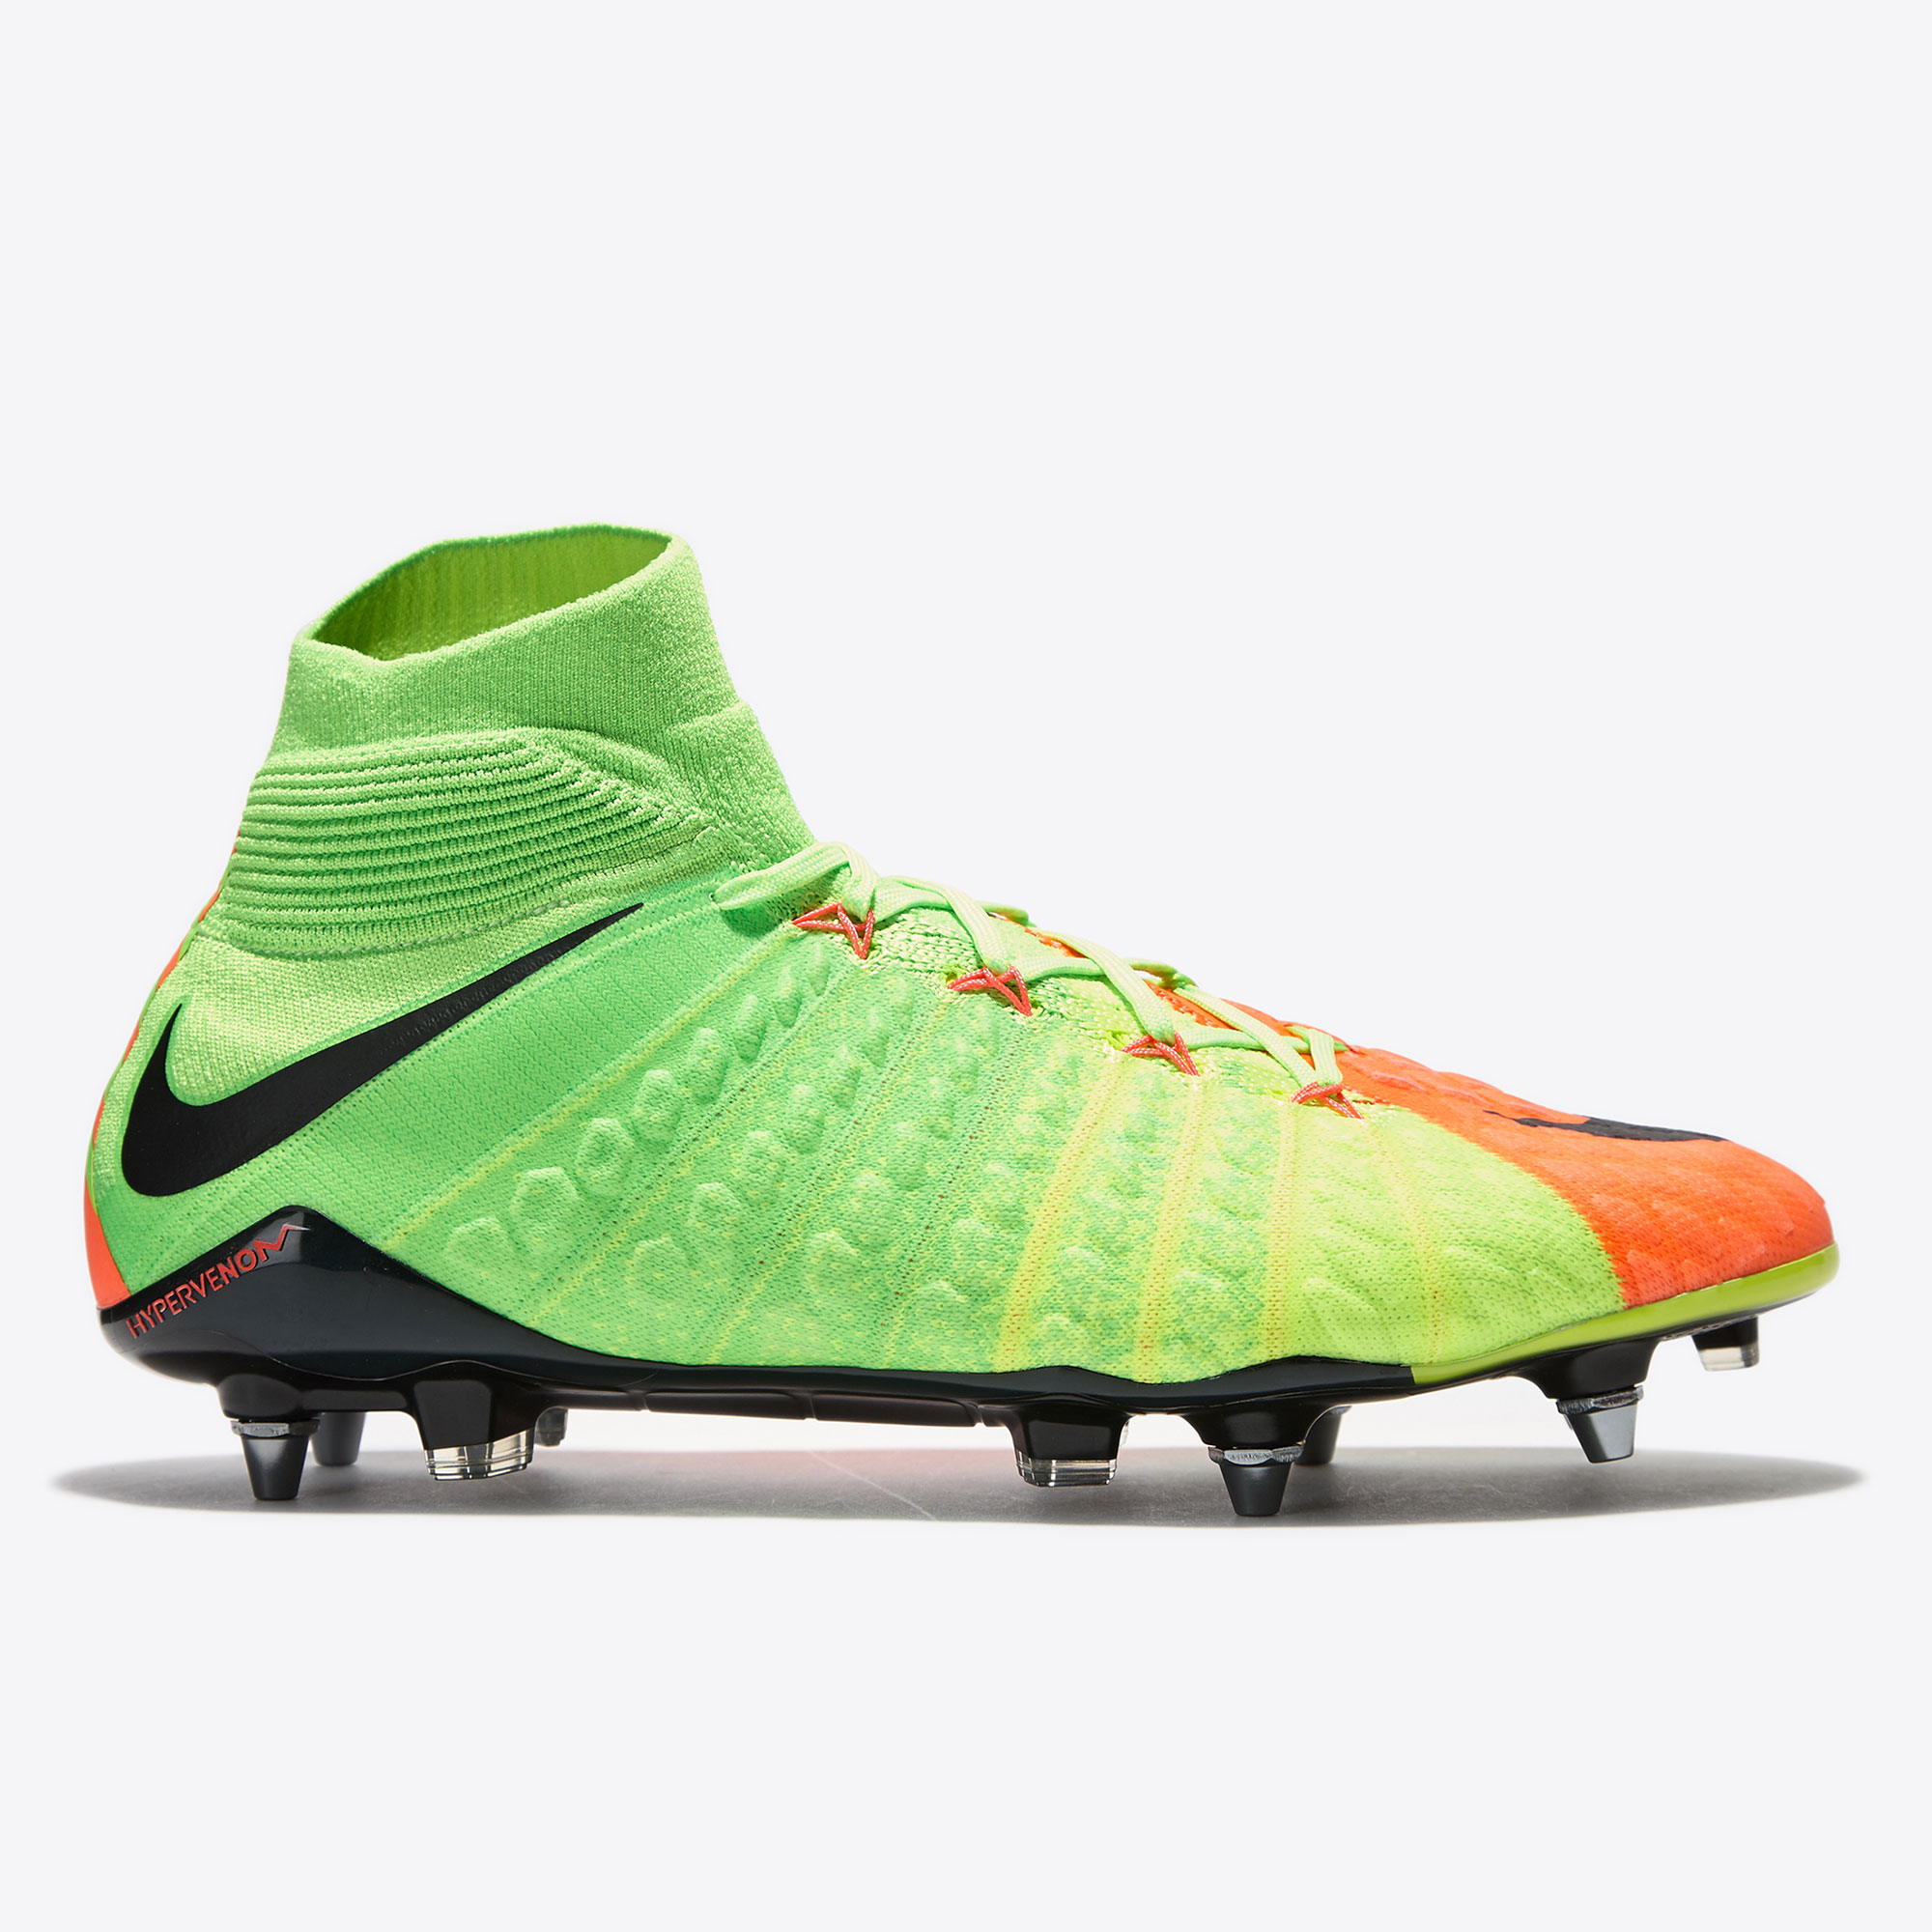 Nike Hypervenom Phantom III SG Pro Electric